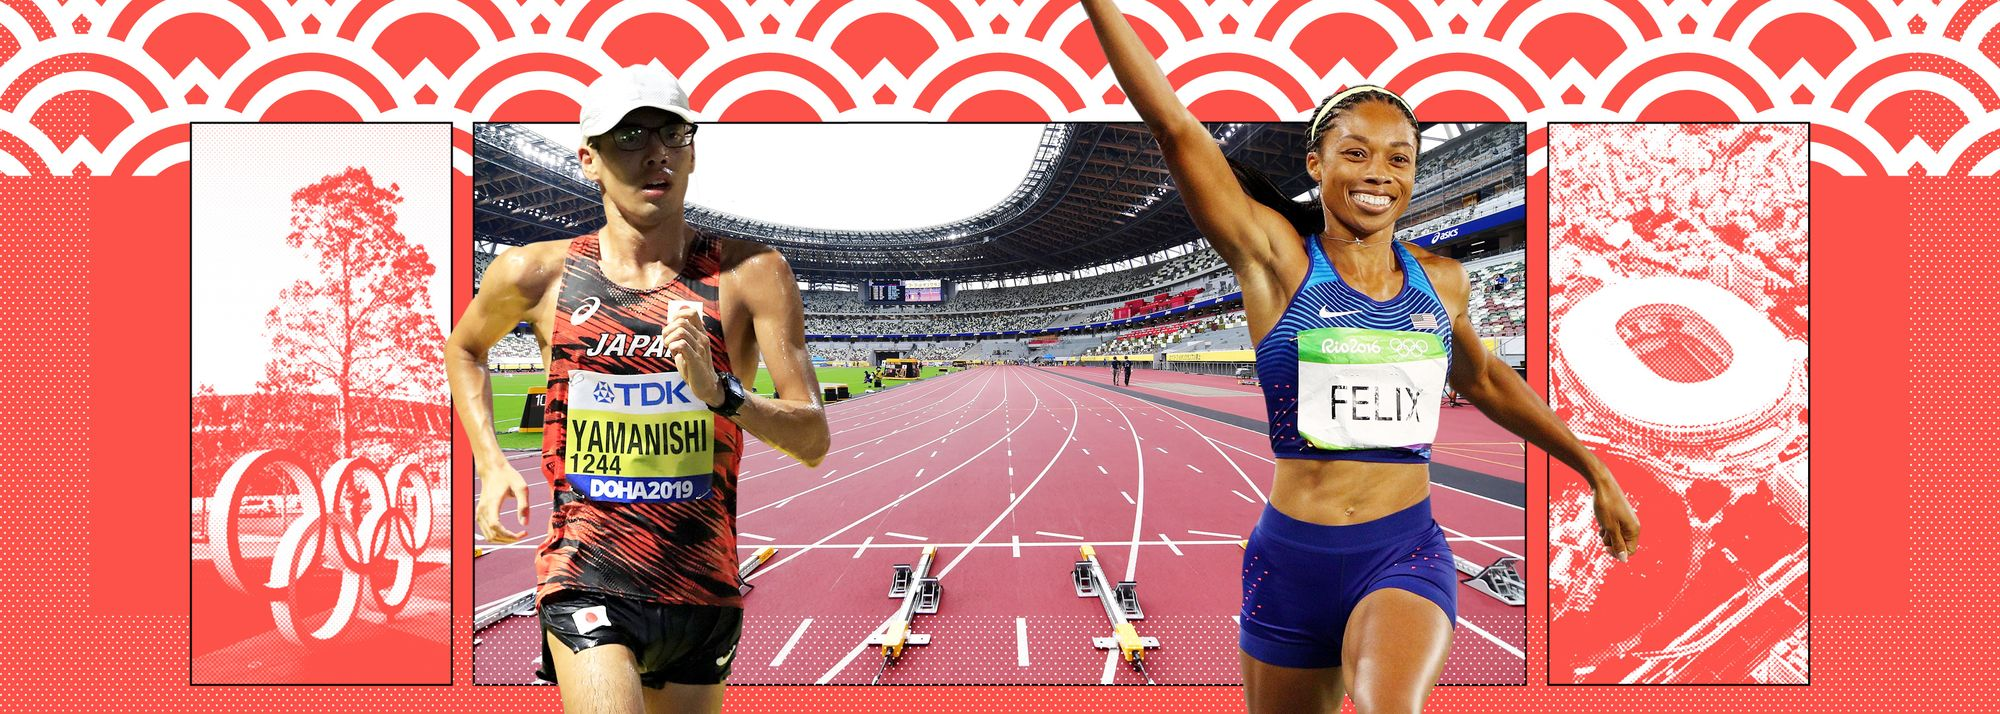 In the concluding part in our Japan's Seven Wonders series, we gaze into our crystal ball and look ahead at what to expect from the forthcoming rescheduled Tokyo Olympic Games.